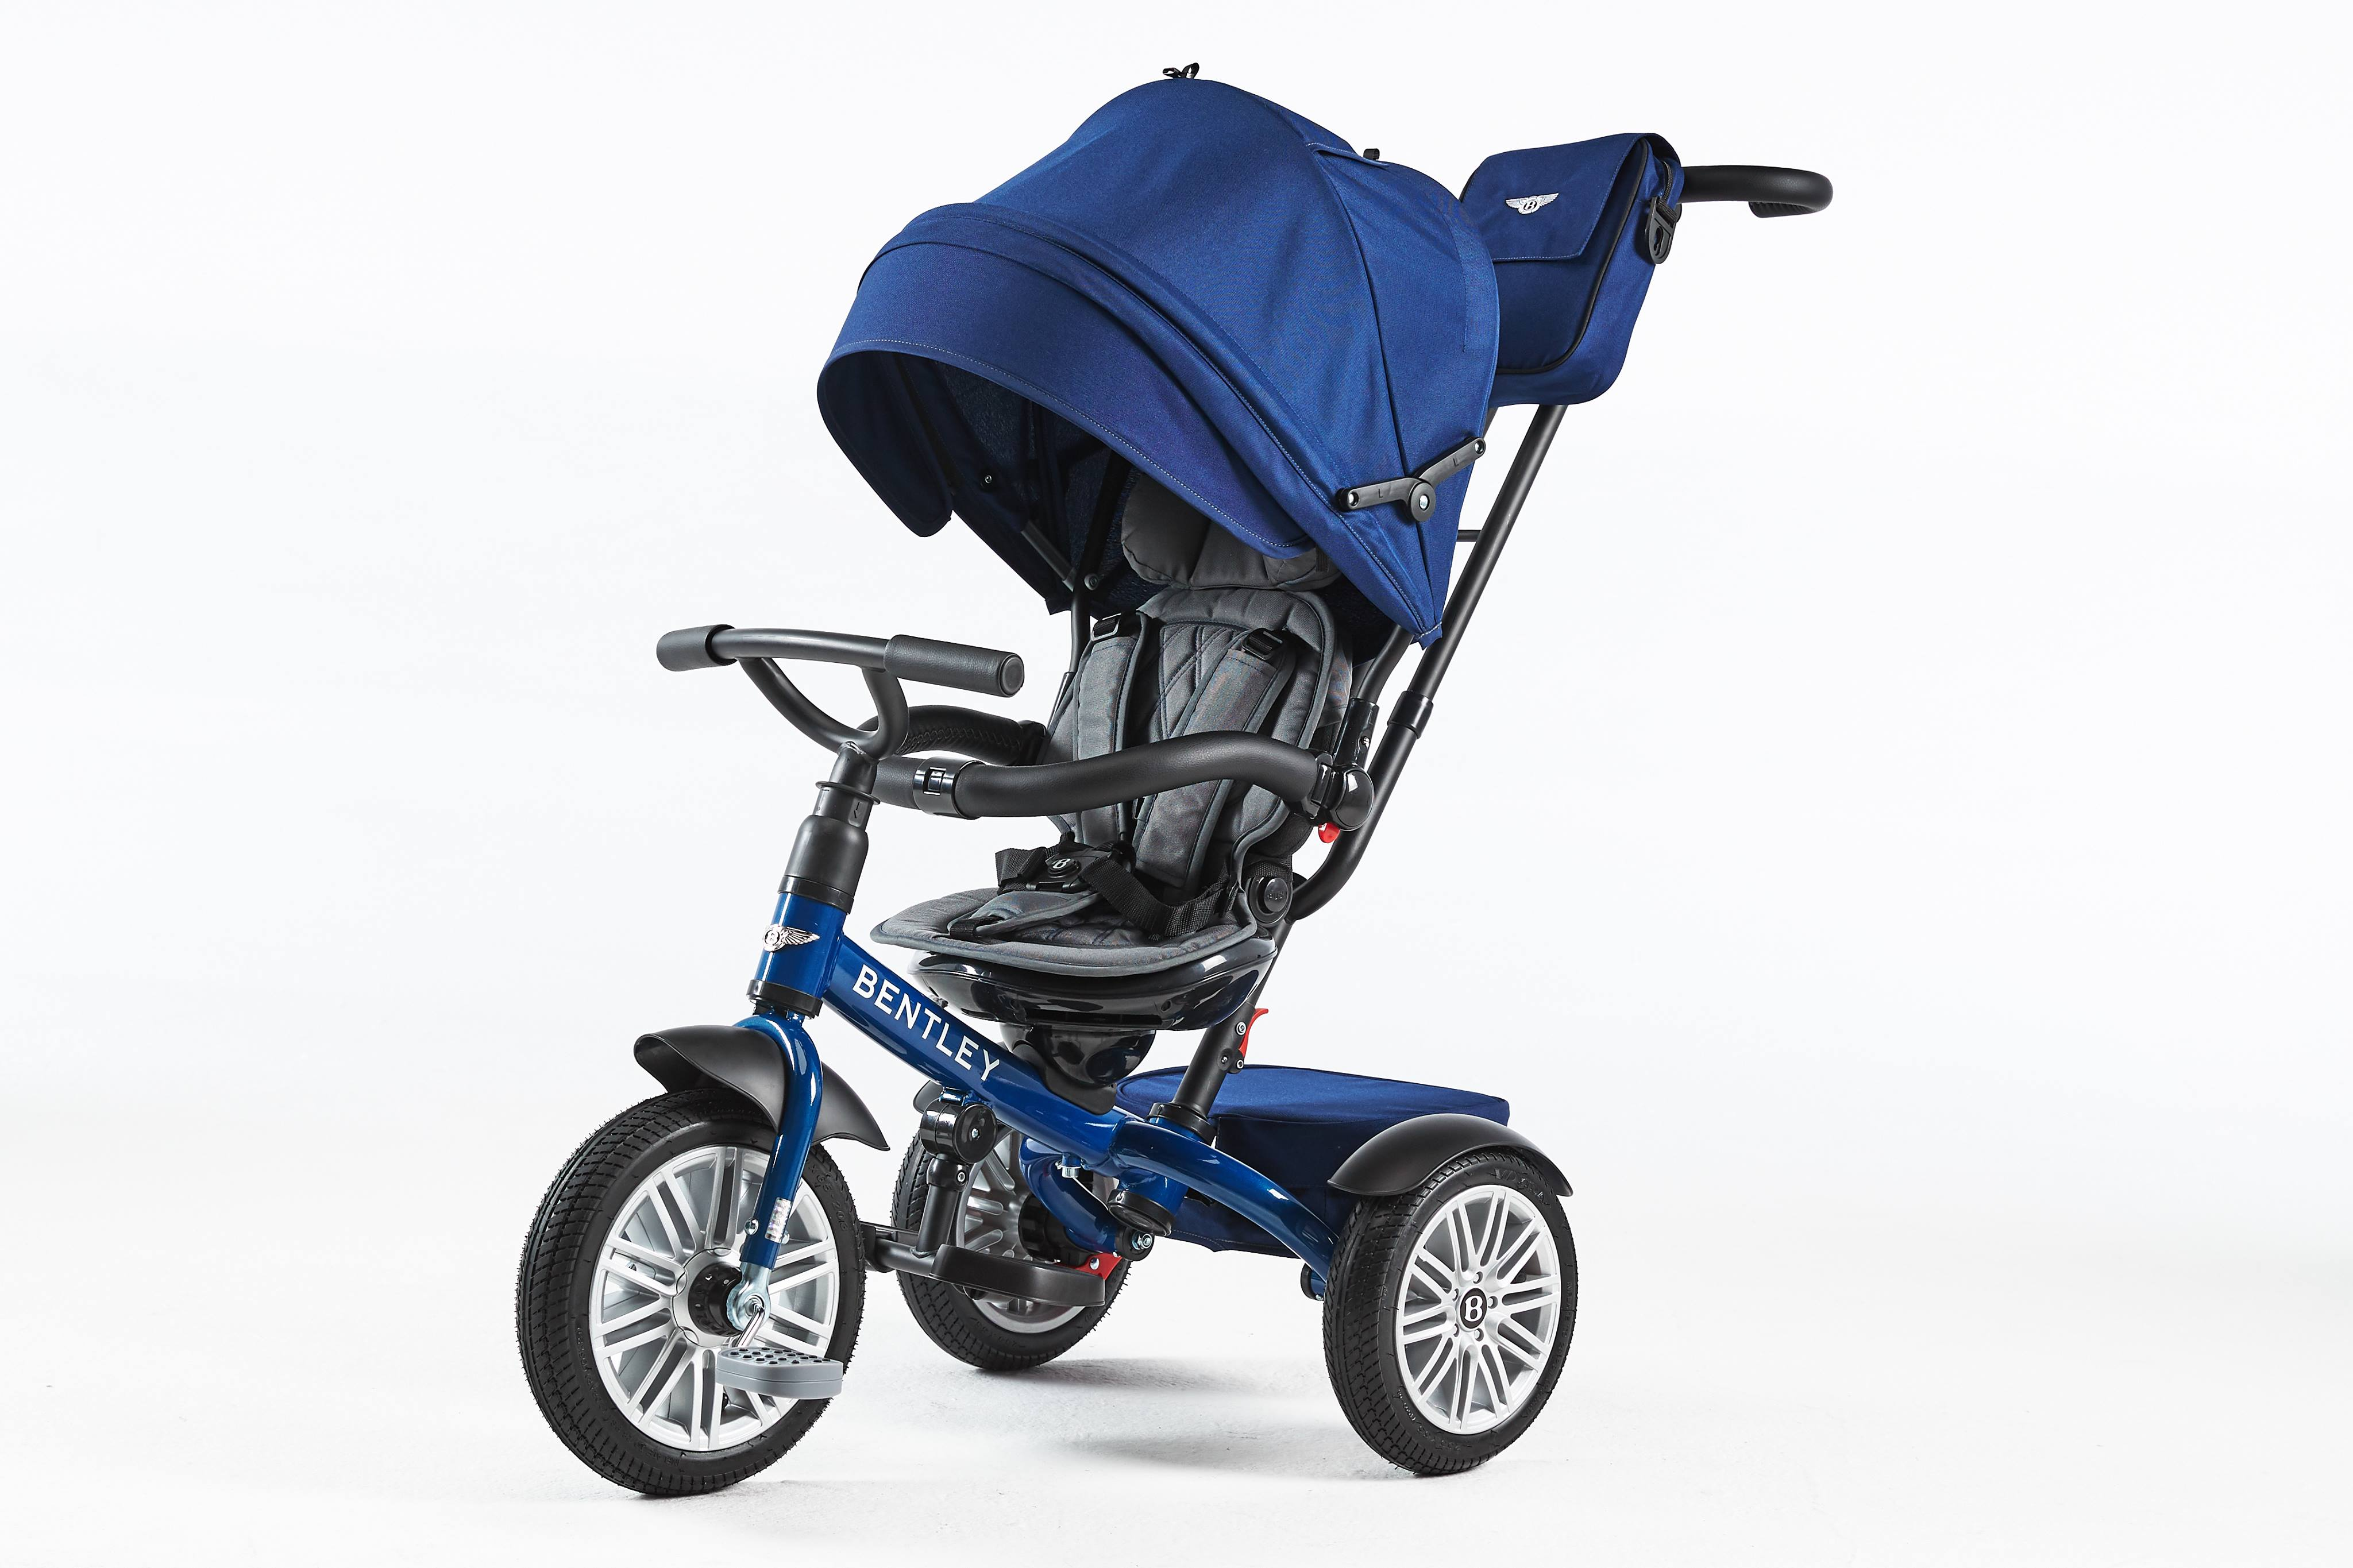 The New Bentley Tricycle 2020 Premium Sport Kinderwagen Buggy Trike sequin blue